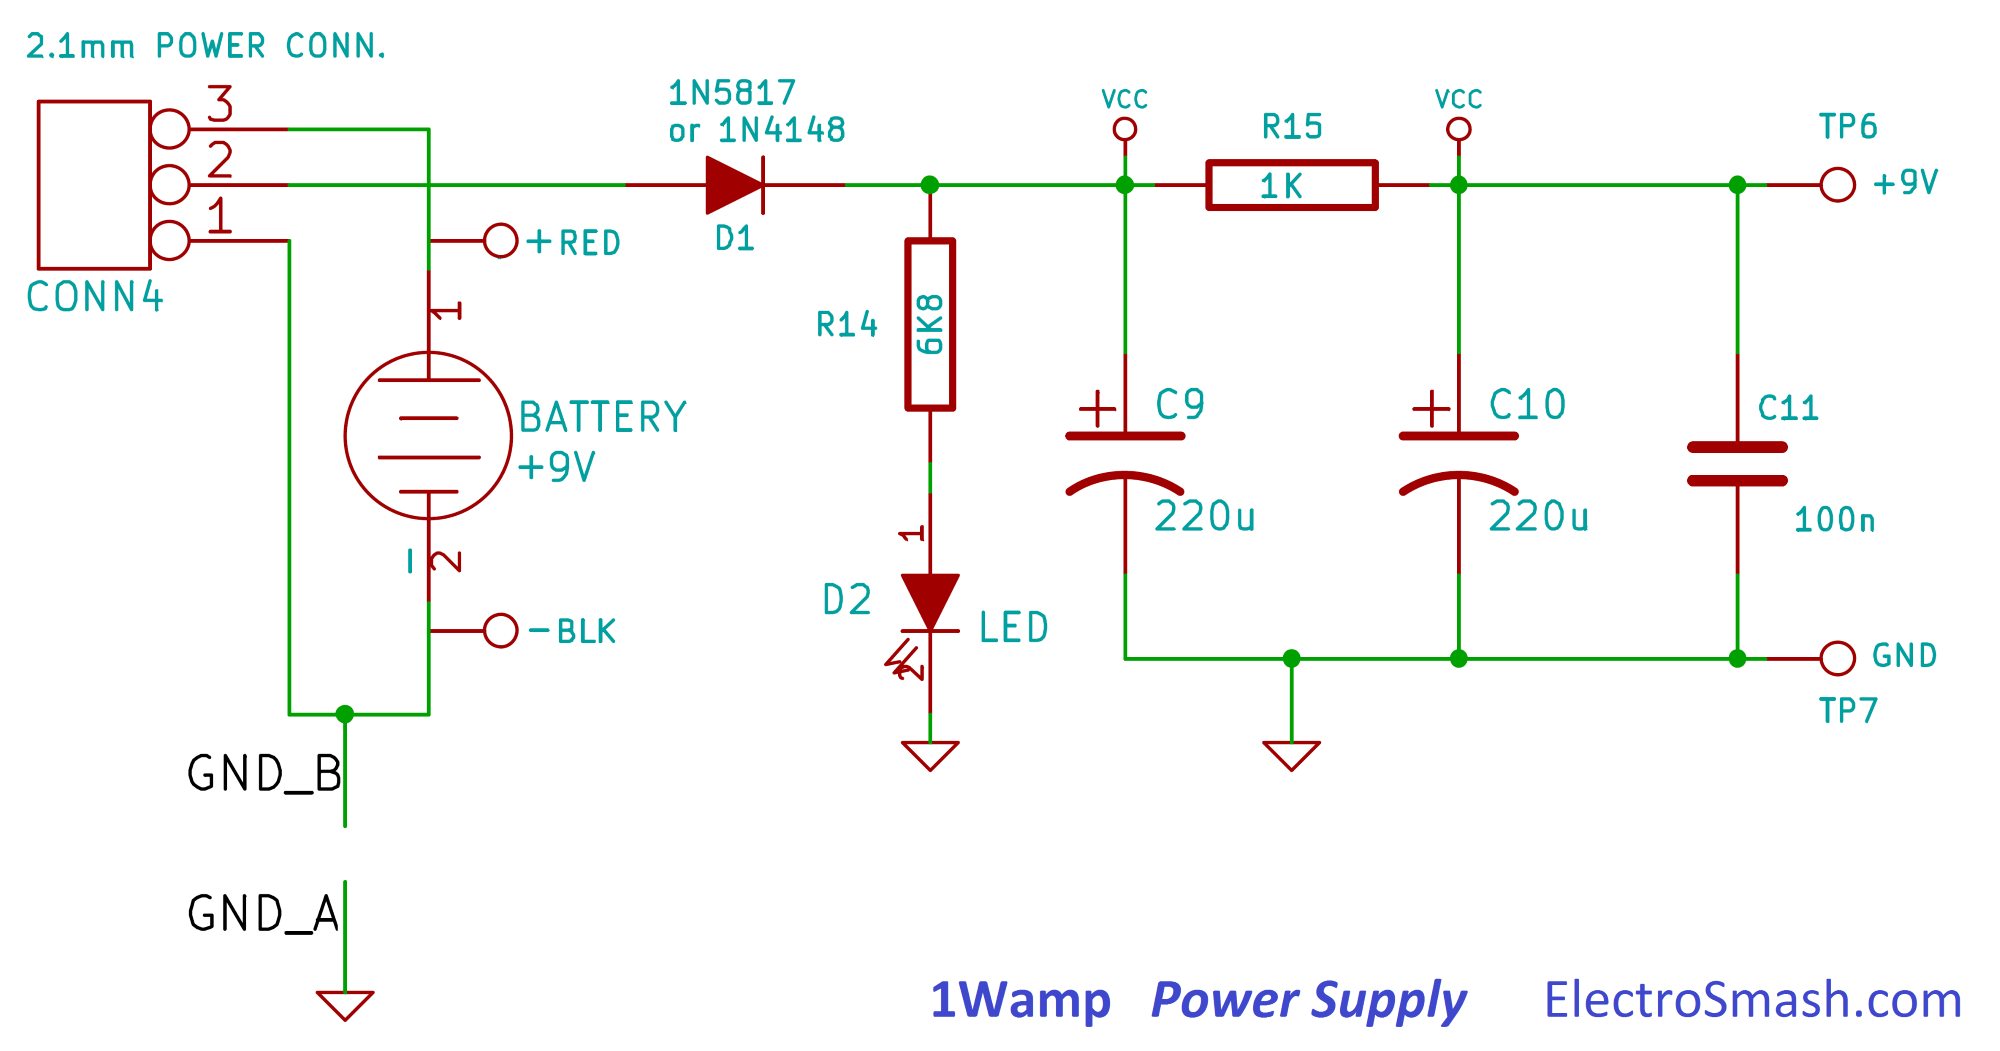 9v battery diagram gems pressure sensor wiring electrosmash 1wamp electroc guitar amplifier